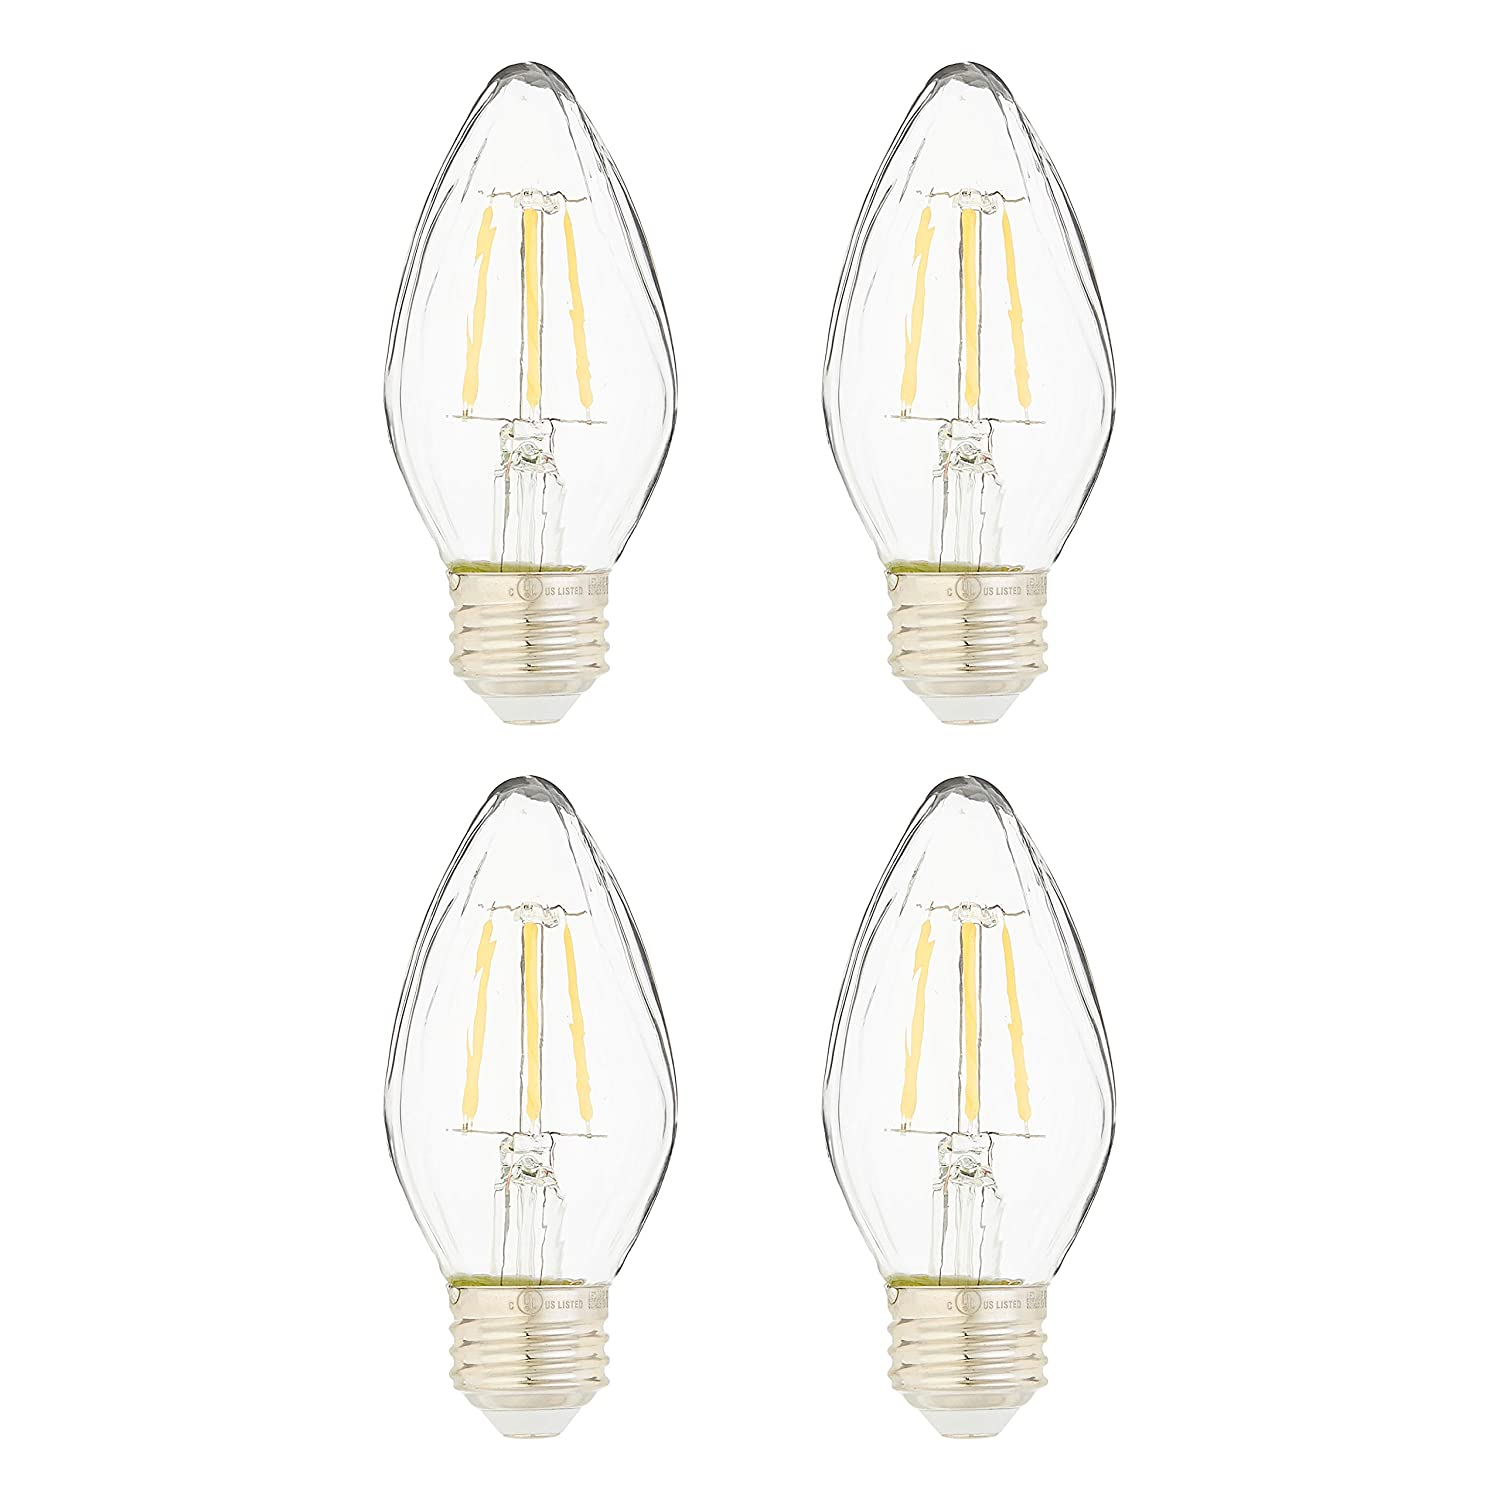 AmazonBasics 60 Watt Equivalent, Clear, Dimmable, F15 | Soft White, 4-Pack